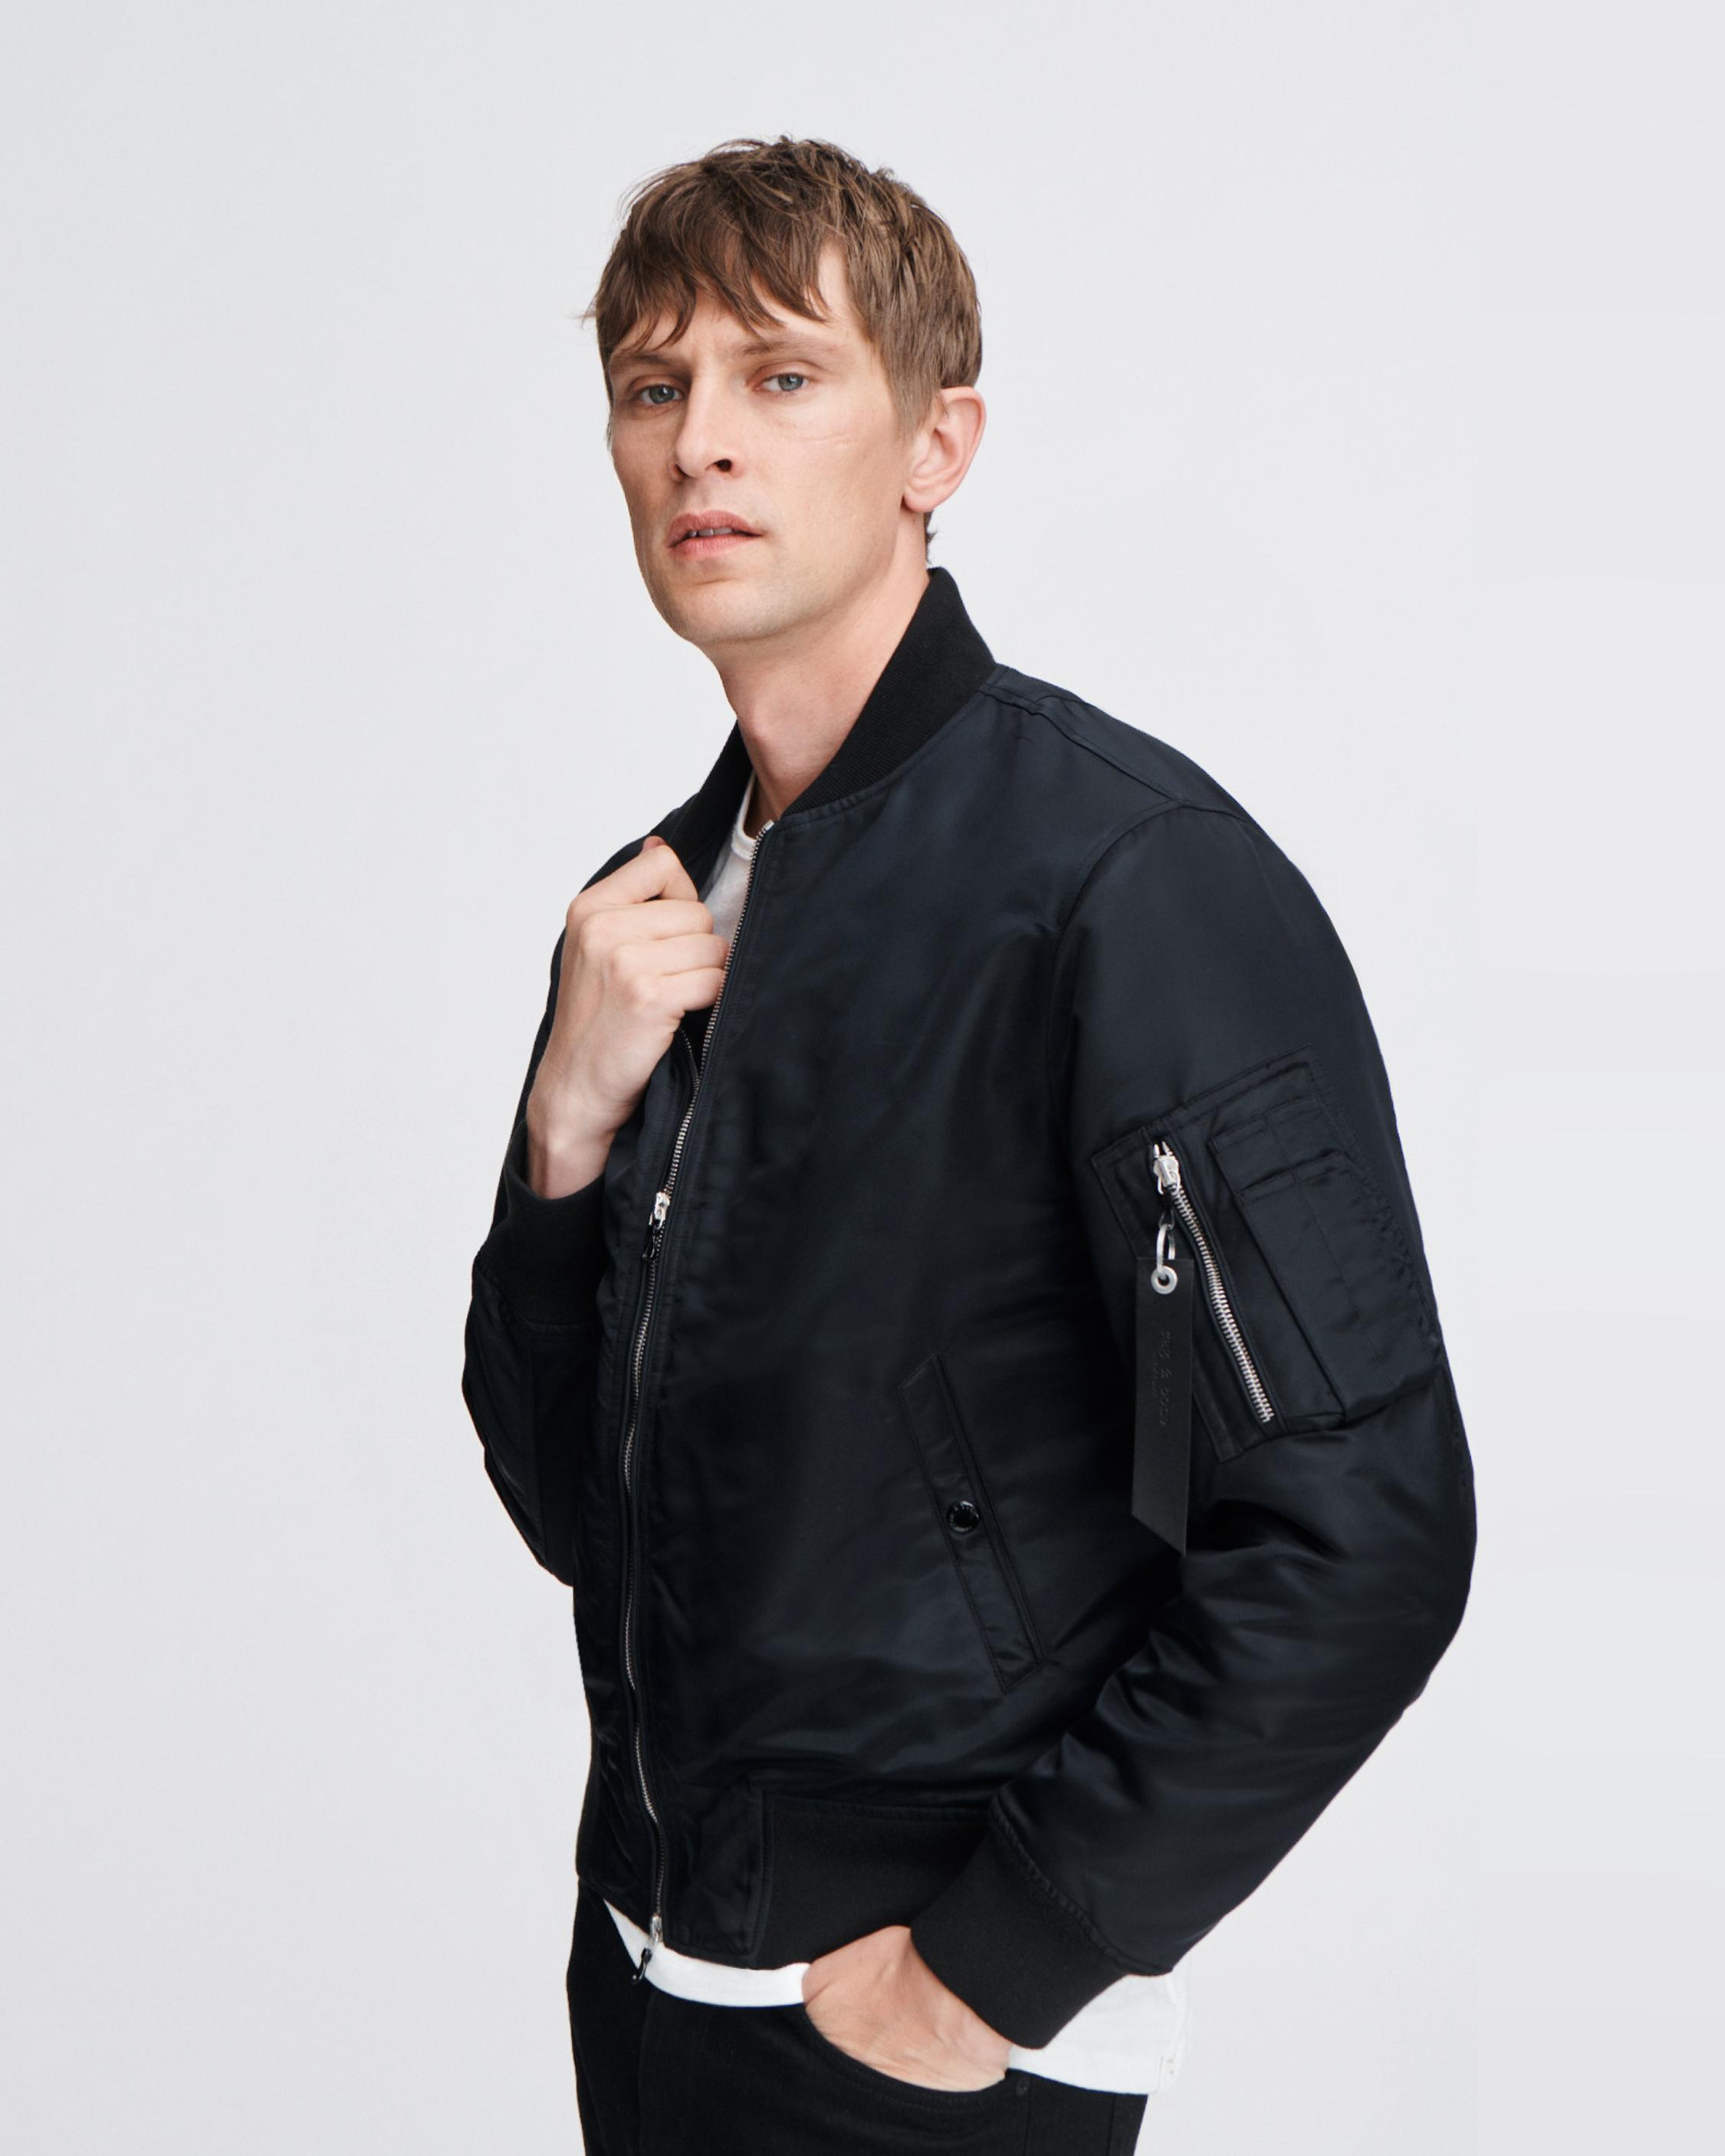 Geniue Stockist Cheap Online For Sale Discount Sale Rag & Bone/jean Woman Leather Bomber Jacket Black Size M Rag & Bone Cheap Manchester Great Sale Extremely Cheap Price Outlet Lowest Price KMaP2